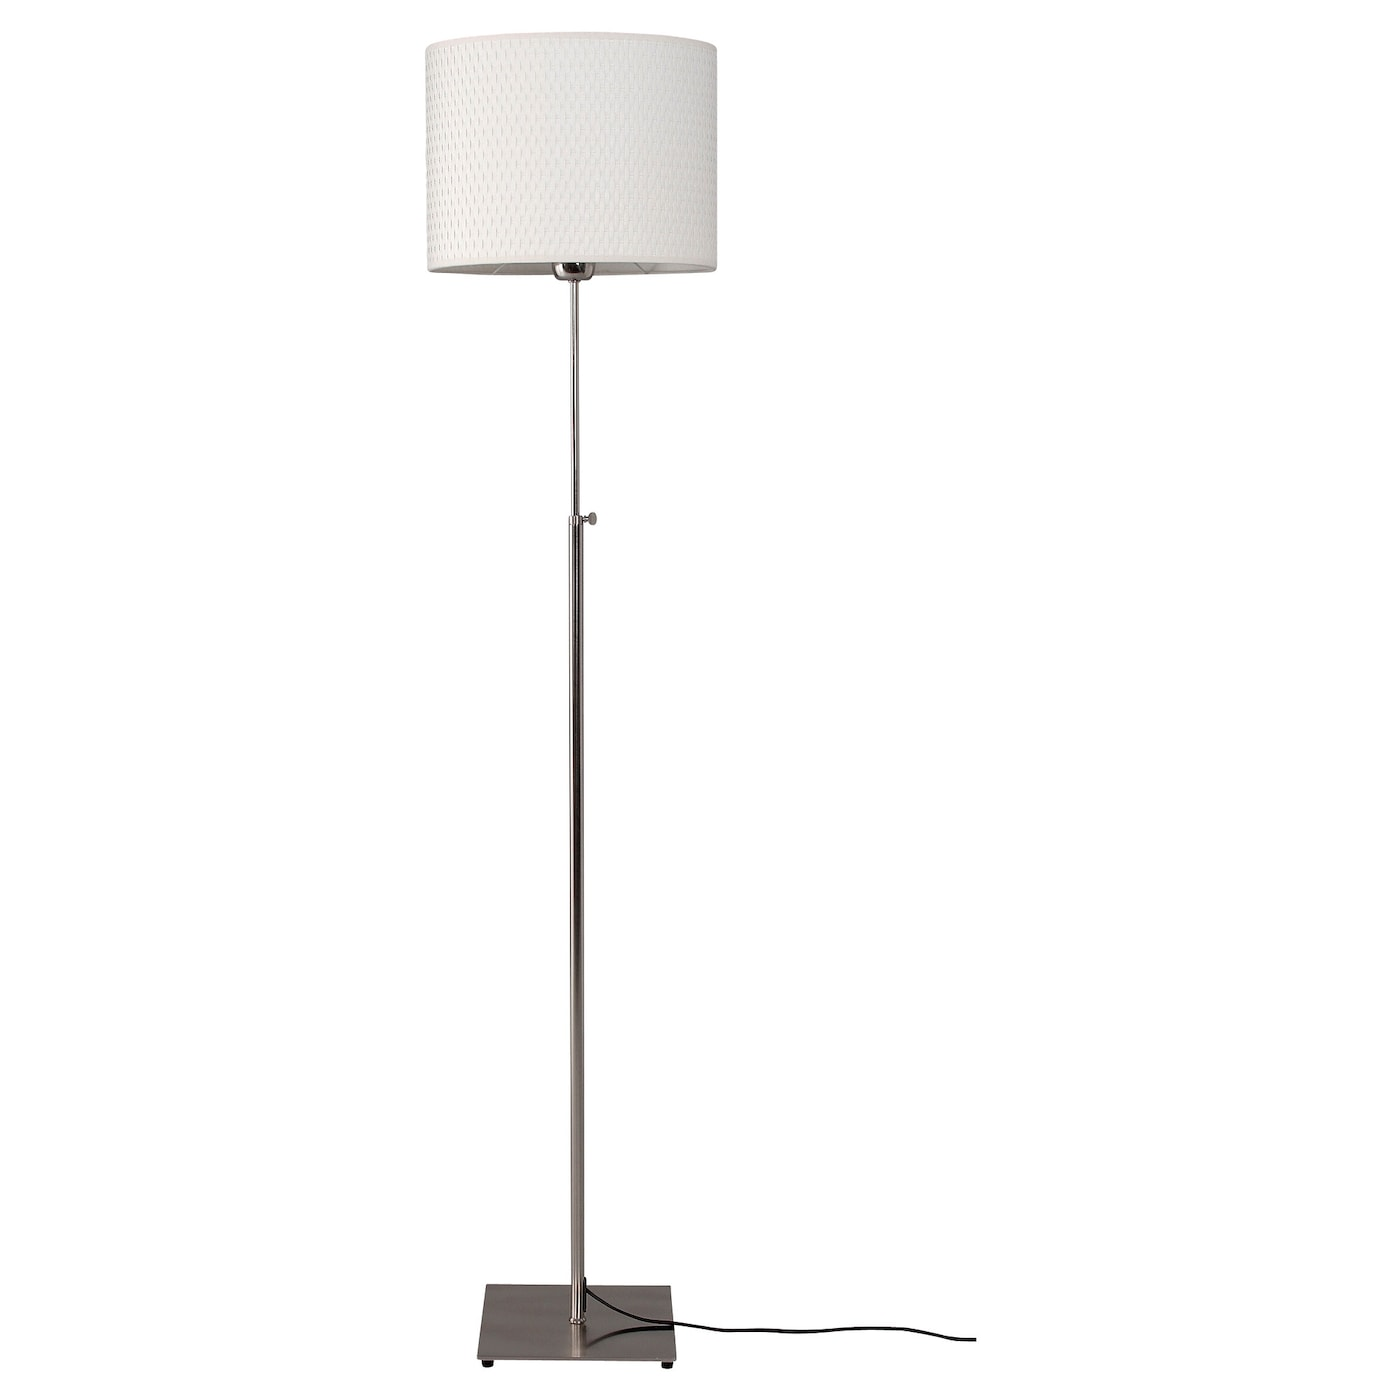 IKEA ALÄNG floor lamp The height is adjustable to suit your lighting needs.